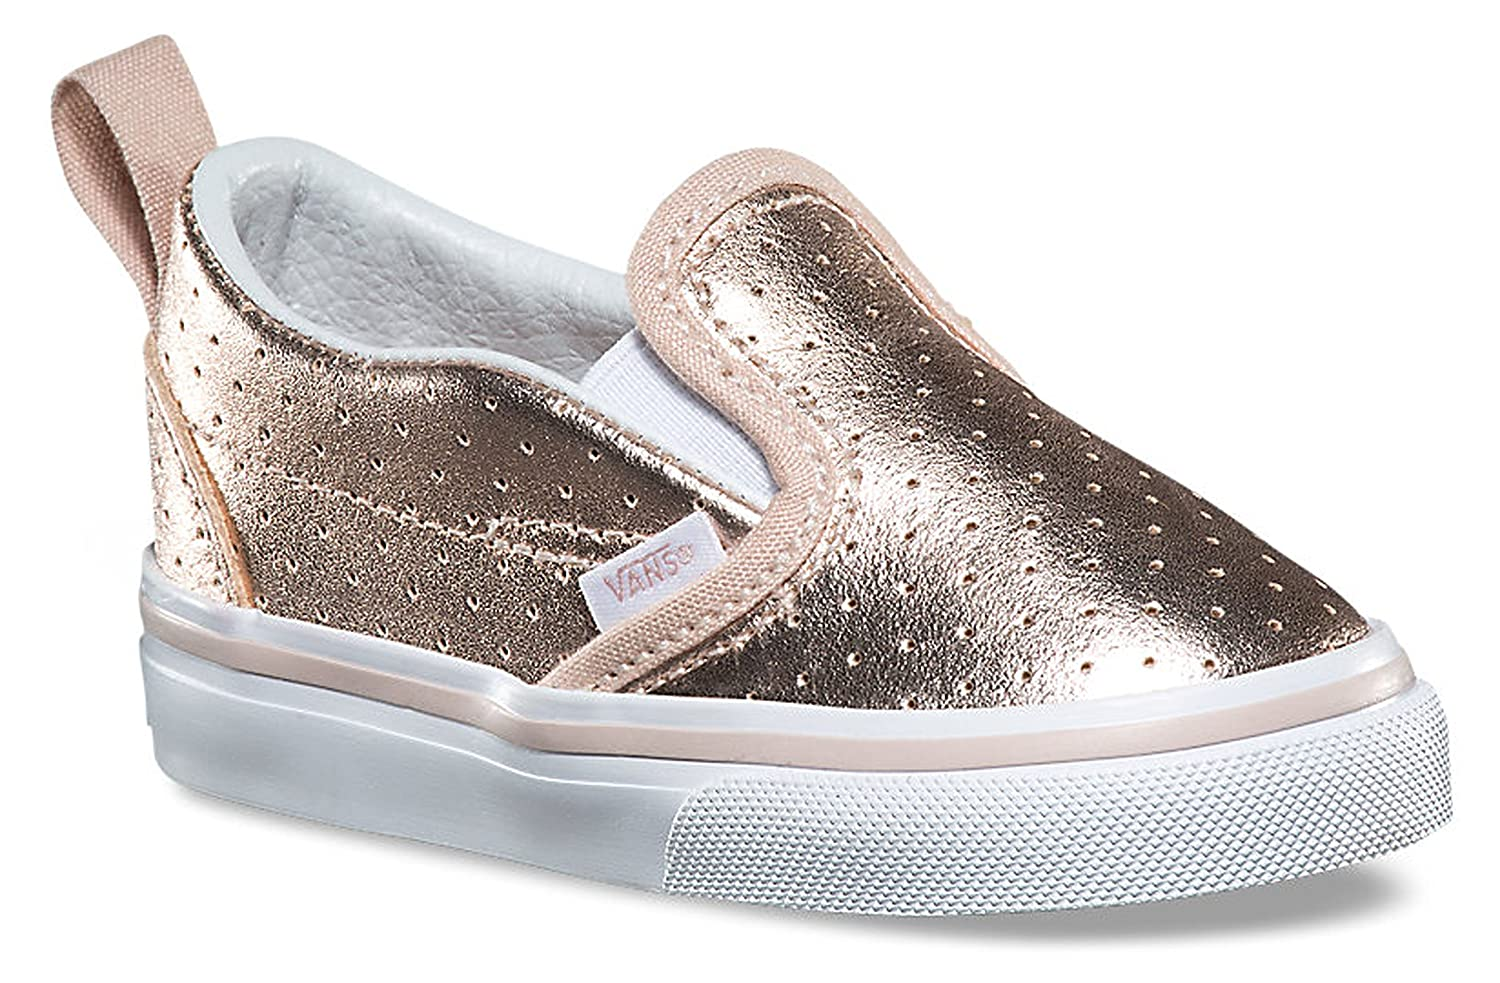 da5f1041dd5c Vans Toddler Slip-On V (Perf Leather) Rose Gold VN0A3488OR0 Toddler 6.5:  Amazon.ca: Shoes & Handbags